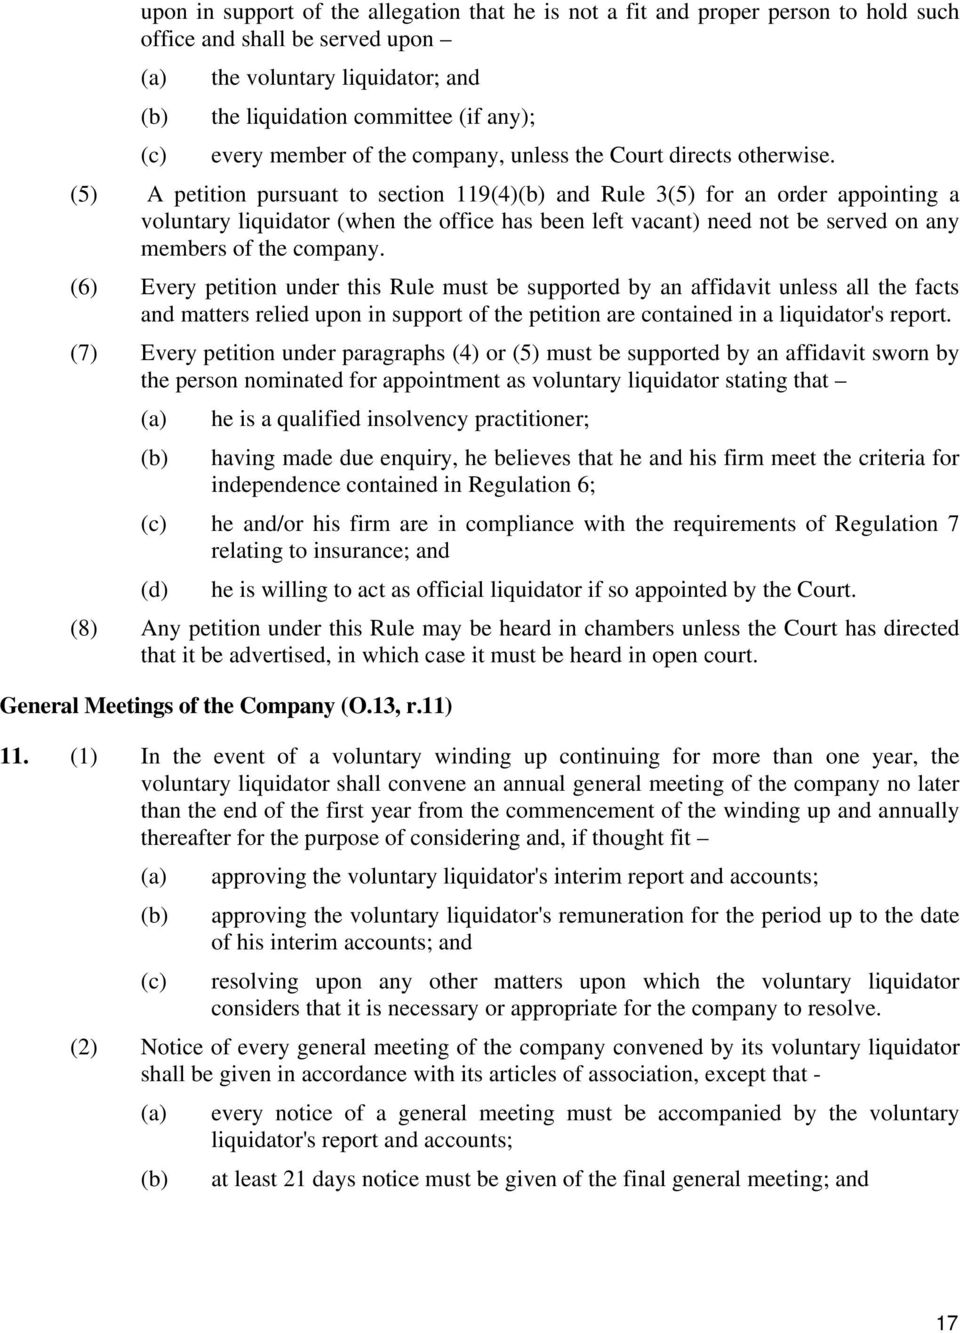 (5) A petition pursuant to section 119(4) and Rule 3(5) for an order appointing a voluntary liquidator (when the office has been left vacant) need not be served on any members of the company.